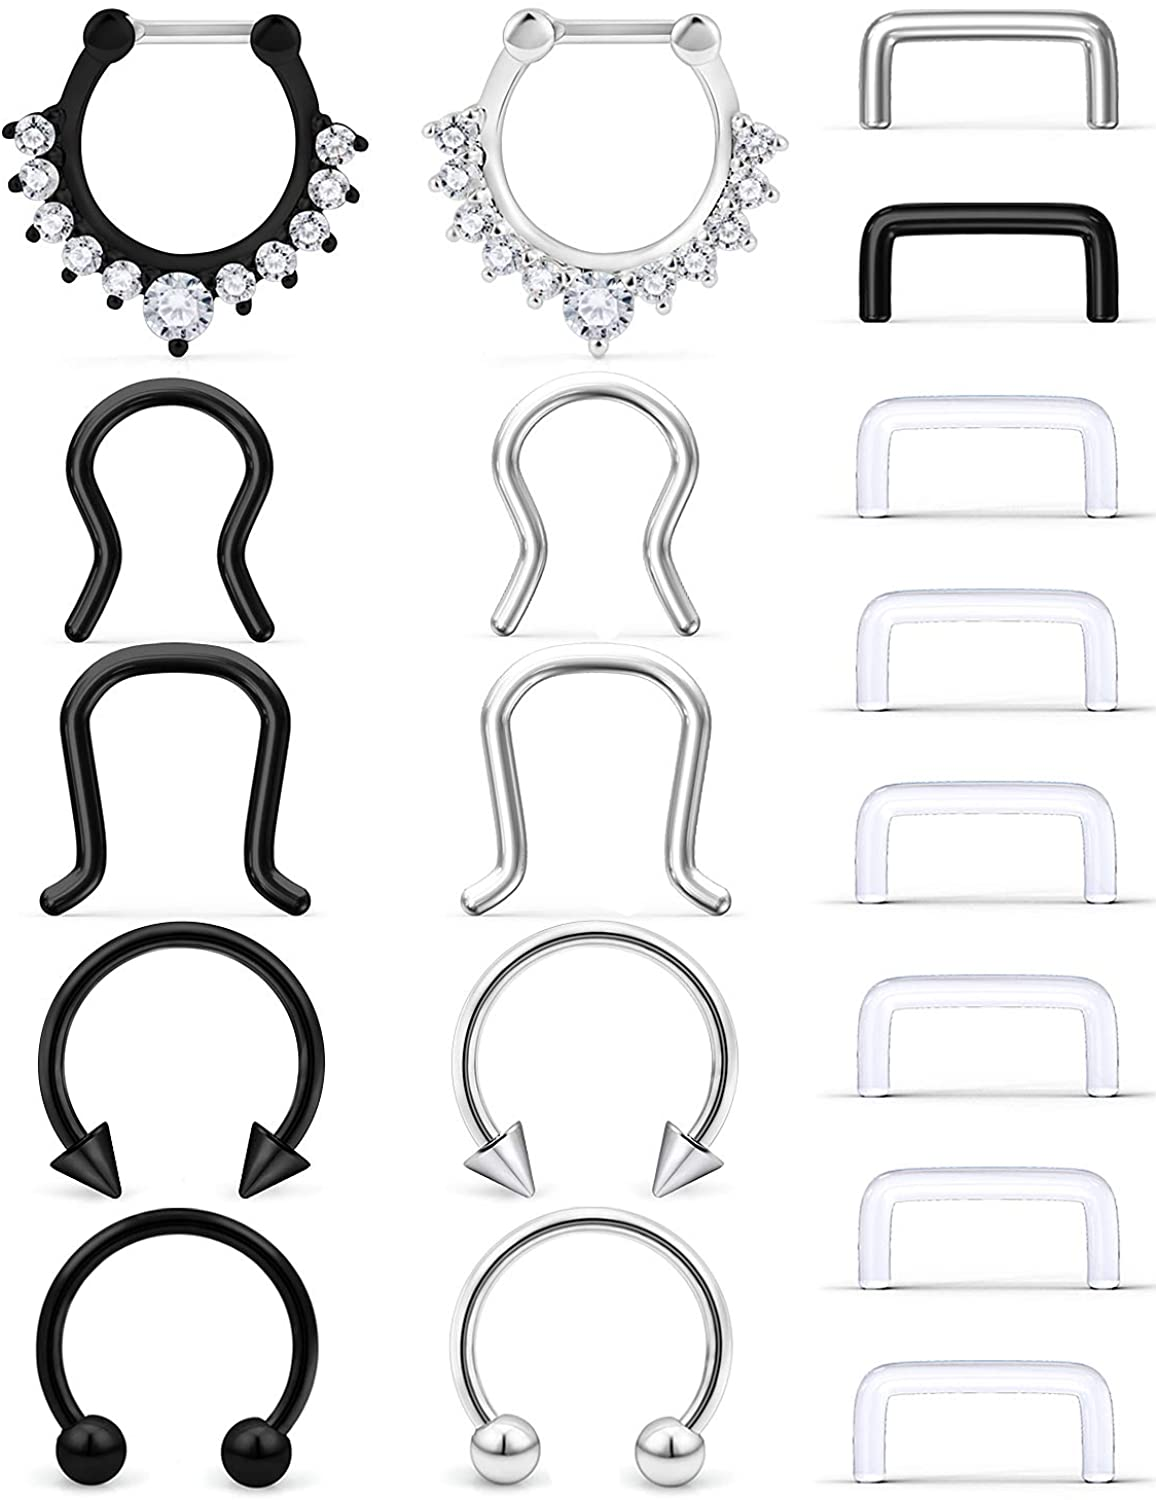 SCERRING 16G Septum Jewelry Stainless Steel Hinged Seamless Nose Hoop Ring Cartilage Daith Tragus Clicker Rings Retainer Body Piercing Jewelry 18-20PCS